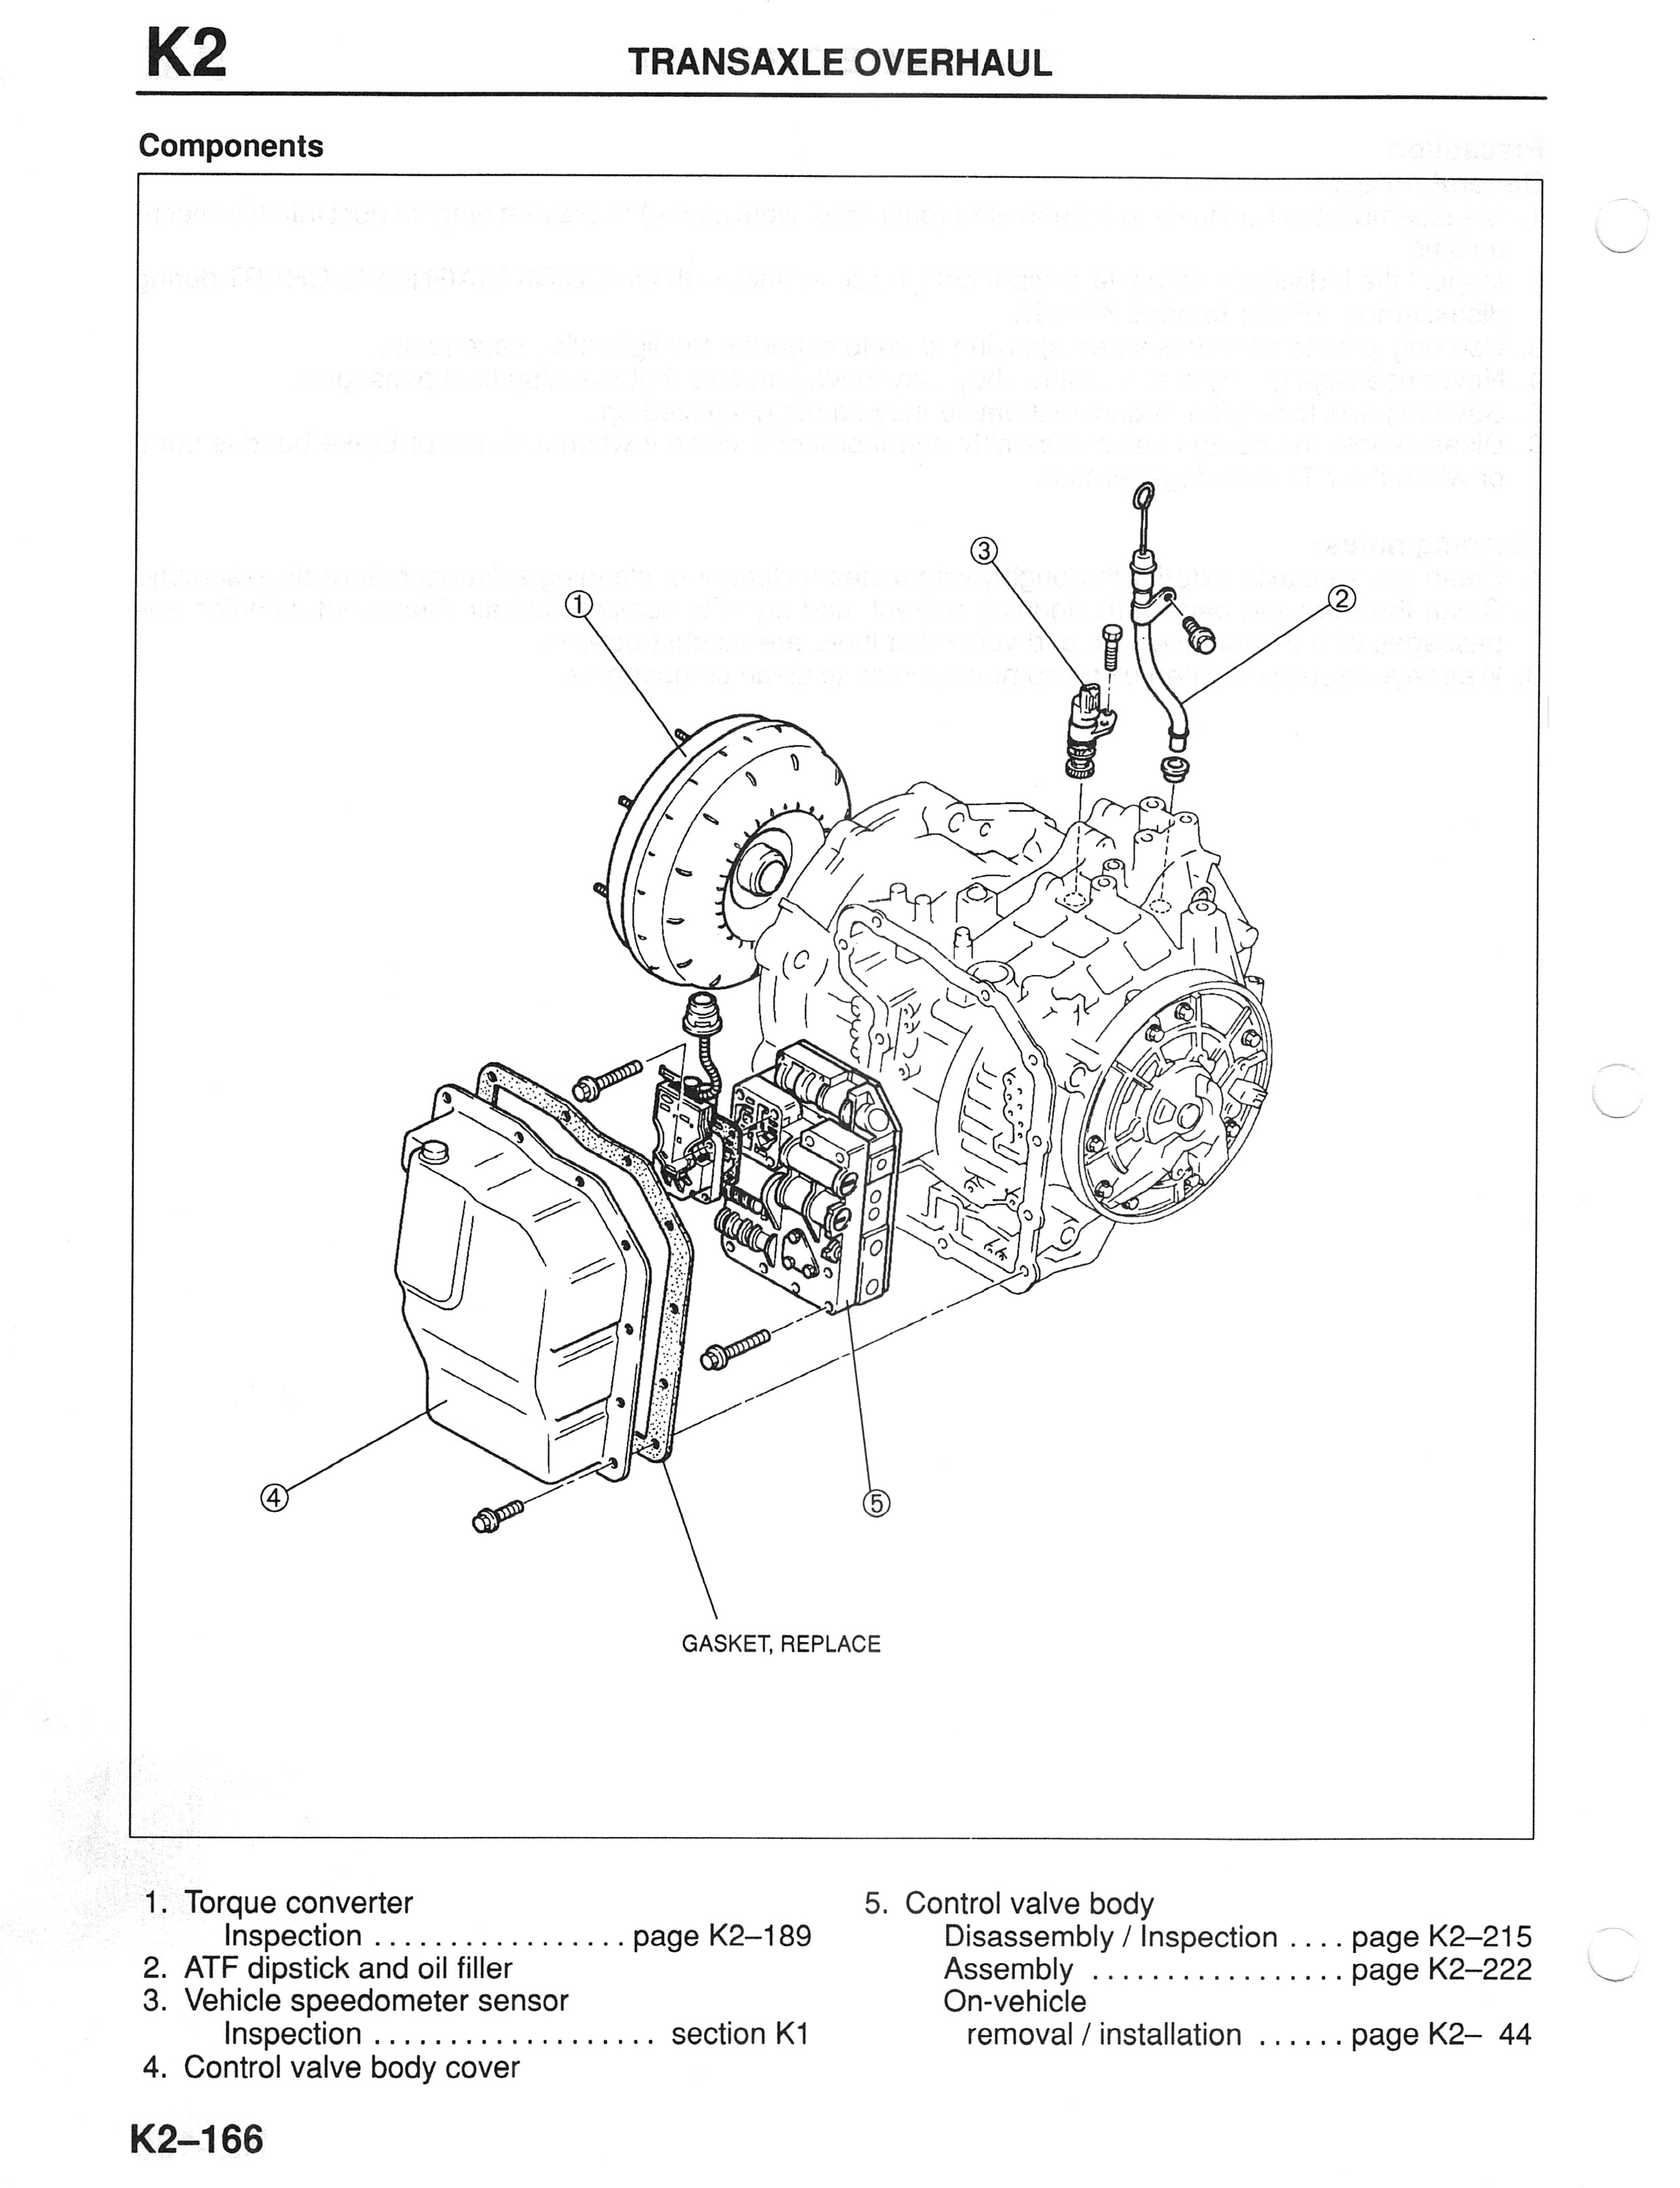 2000 Mazda Miata Fuel Filter Auto Electrical Wiring Diagram Location 5 Cabin Air Change Free Engine Image Millenia